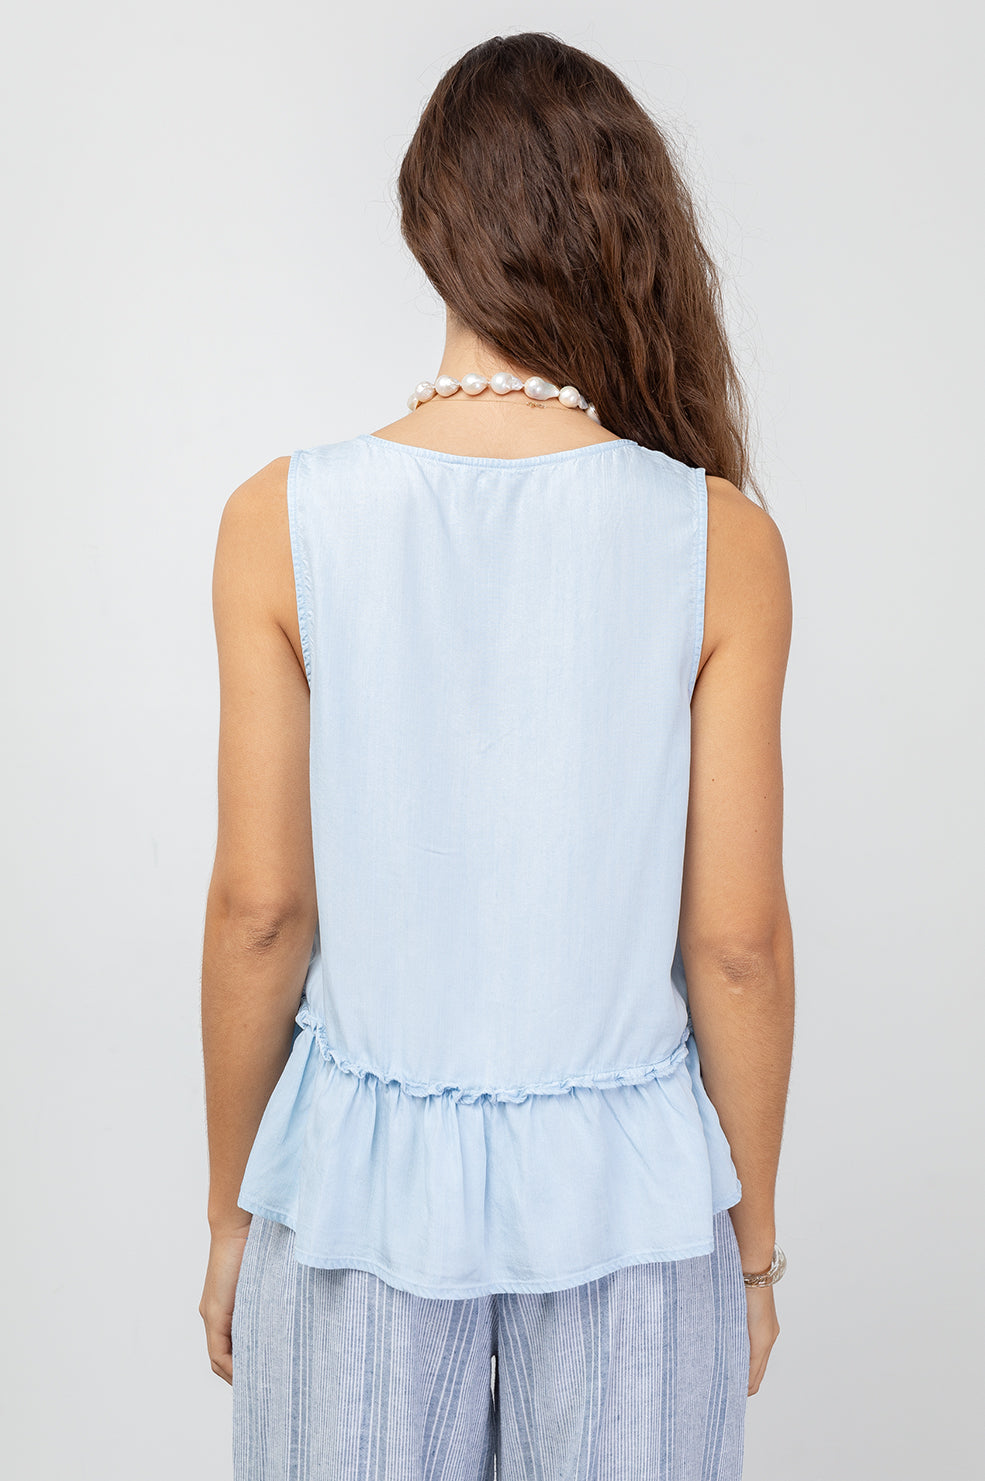 Mira Light Vintage, Women's Sleeveless Top